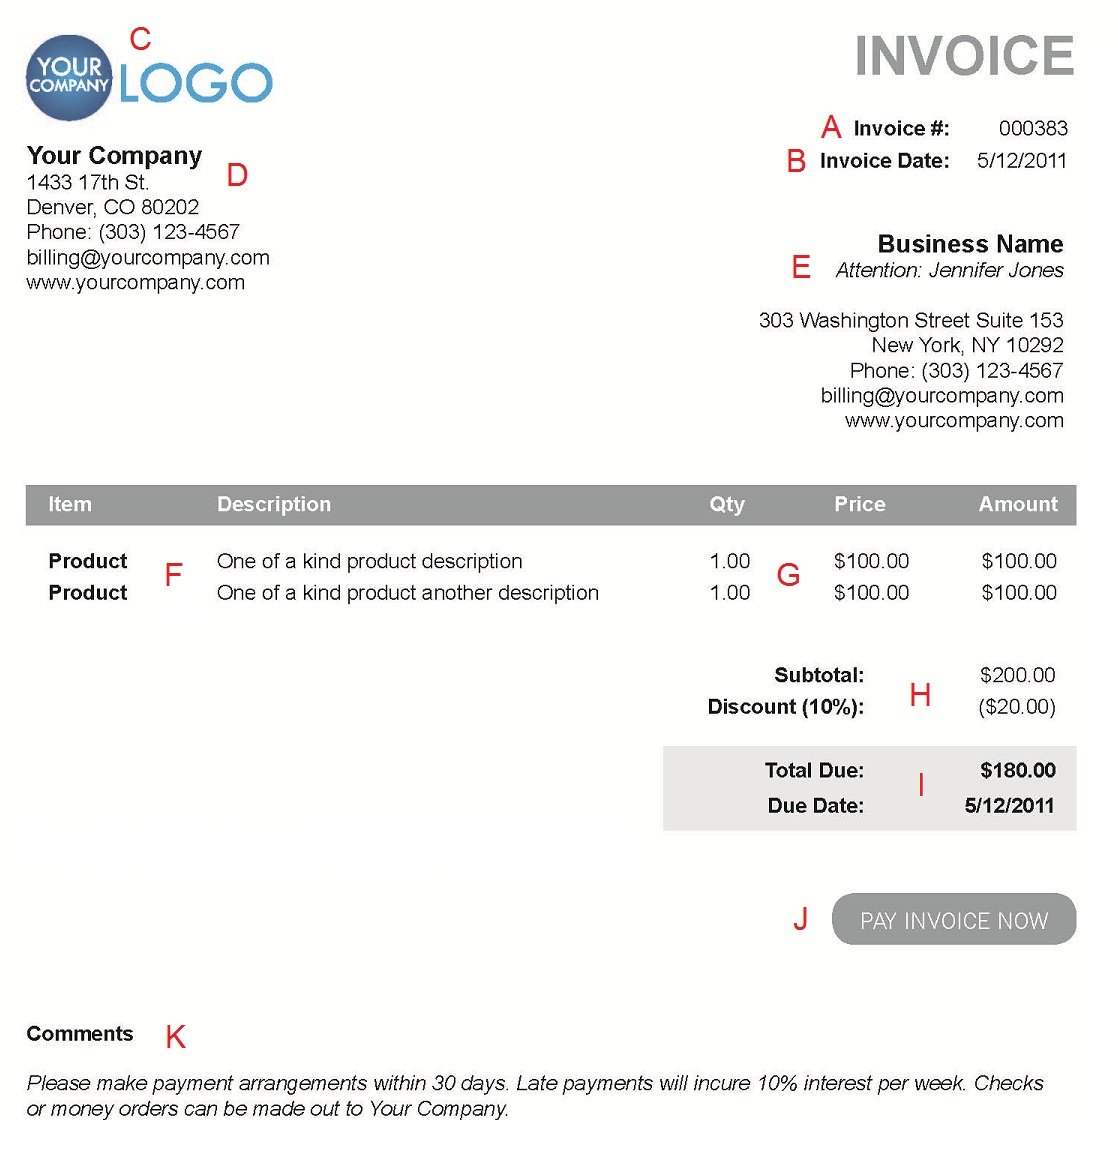 Usdgus  Stunning The  Different Sections Of An Electronic Payment Invoice With Heavenly A  With Archaic Money Receipt Form Also How To Organize Your Receipts In Addition Tow Truck Receipt Template And Car Purchase Receipt As Well As Download Receipt Template Additionally Quicken Receipts From Paysimplecom With Usdgus  Heavenly The  Different Sections Of An Electronic Payment Invoice With Archaic A  And Stunning Money Receipt Form Also How To Organize Your Receipts In Addition Tow Truck Receipt Template From Paysimplecom